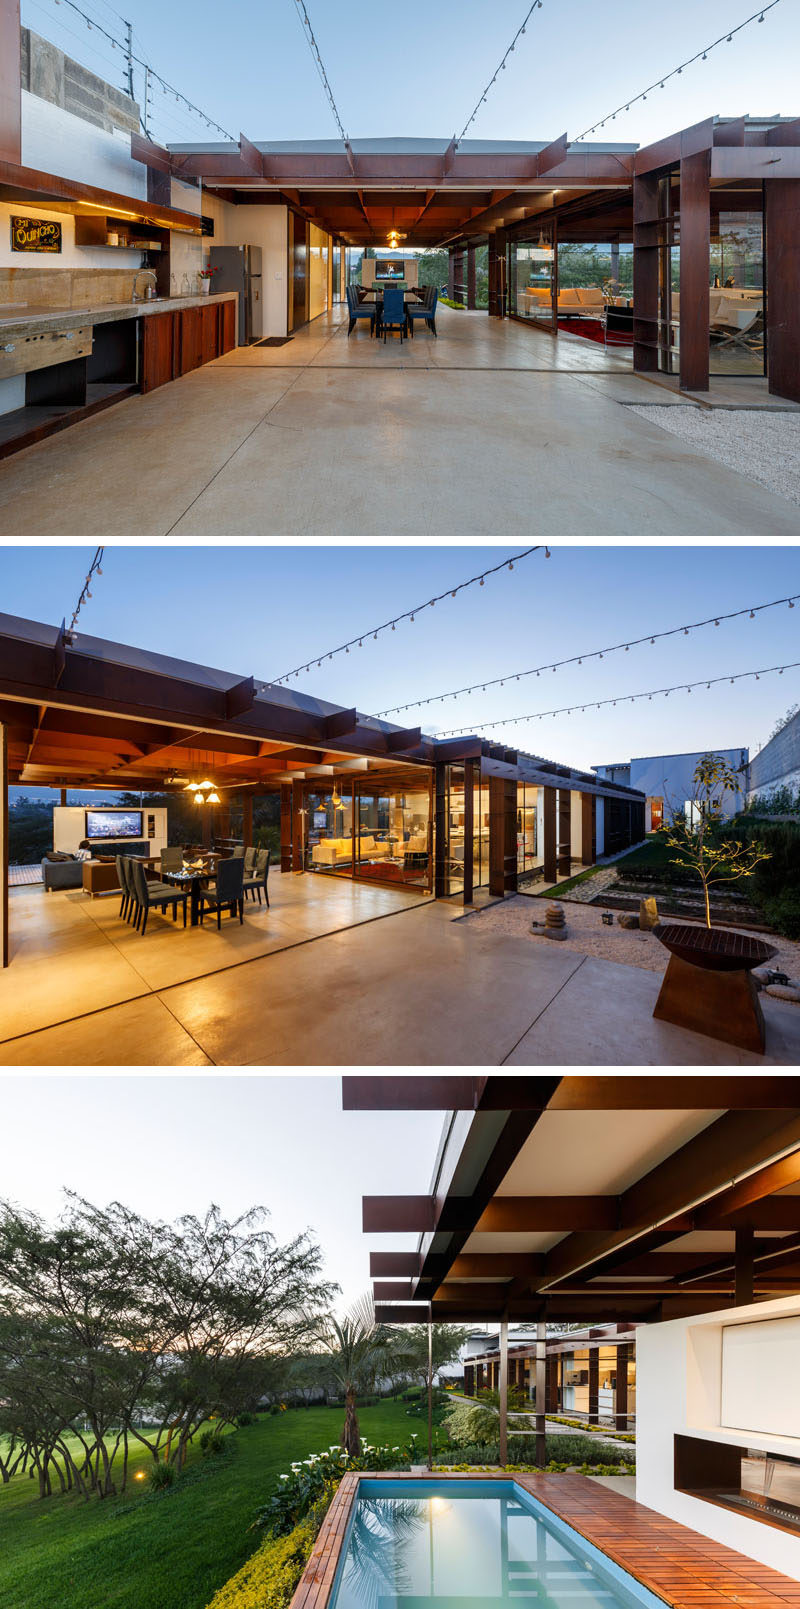 This modern house has a large and partially covered outdoor patio space, with a dining and lounge area, a television and fireplace, an outdoor kitchen and a hot tub. #Patio #OutdoorDining #HotTub #OutdoorKitchen #Fireplace